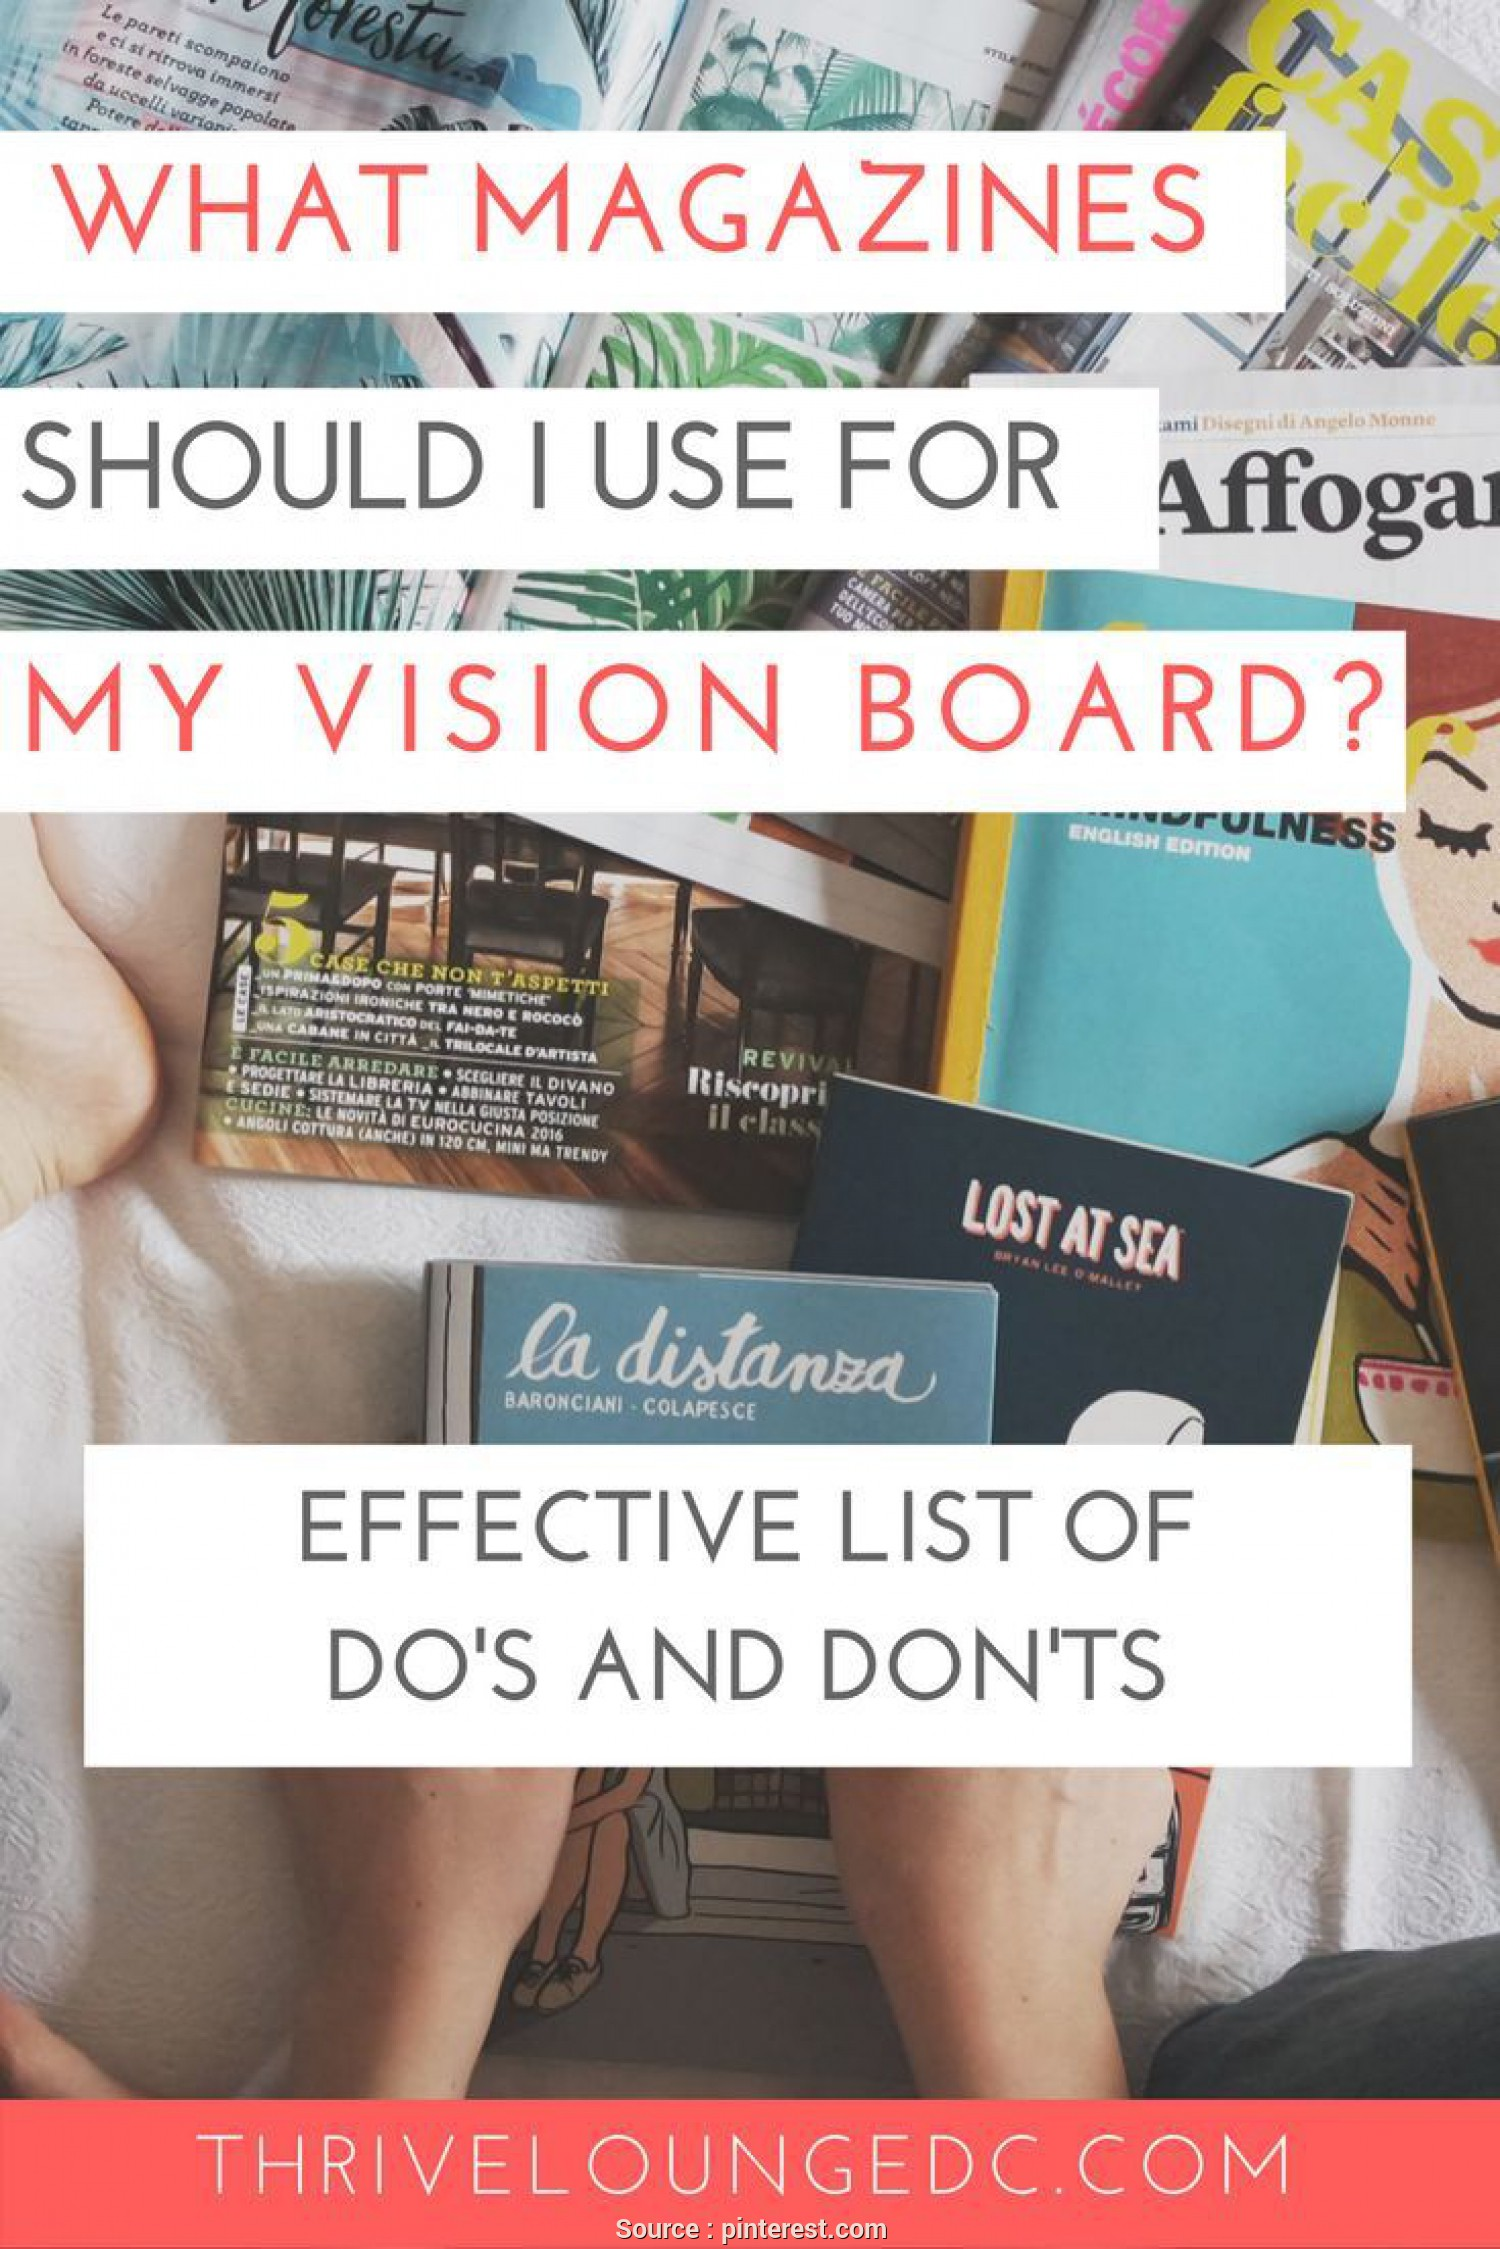 Distanza Tv Divano, Bella What Magazines Should I, For My Vision Board? Effective List Of Do'S, Don'Ts,, Law Of Attraction, Pinterest, Creating A Vision Board